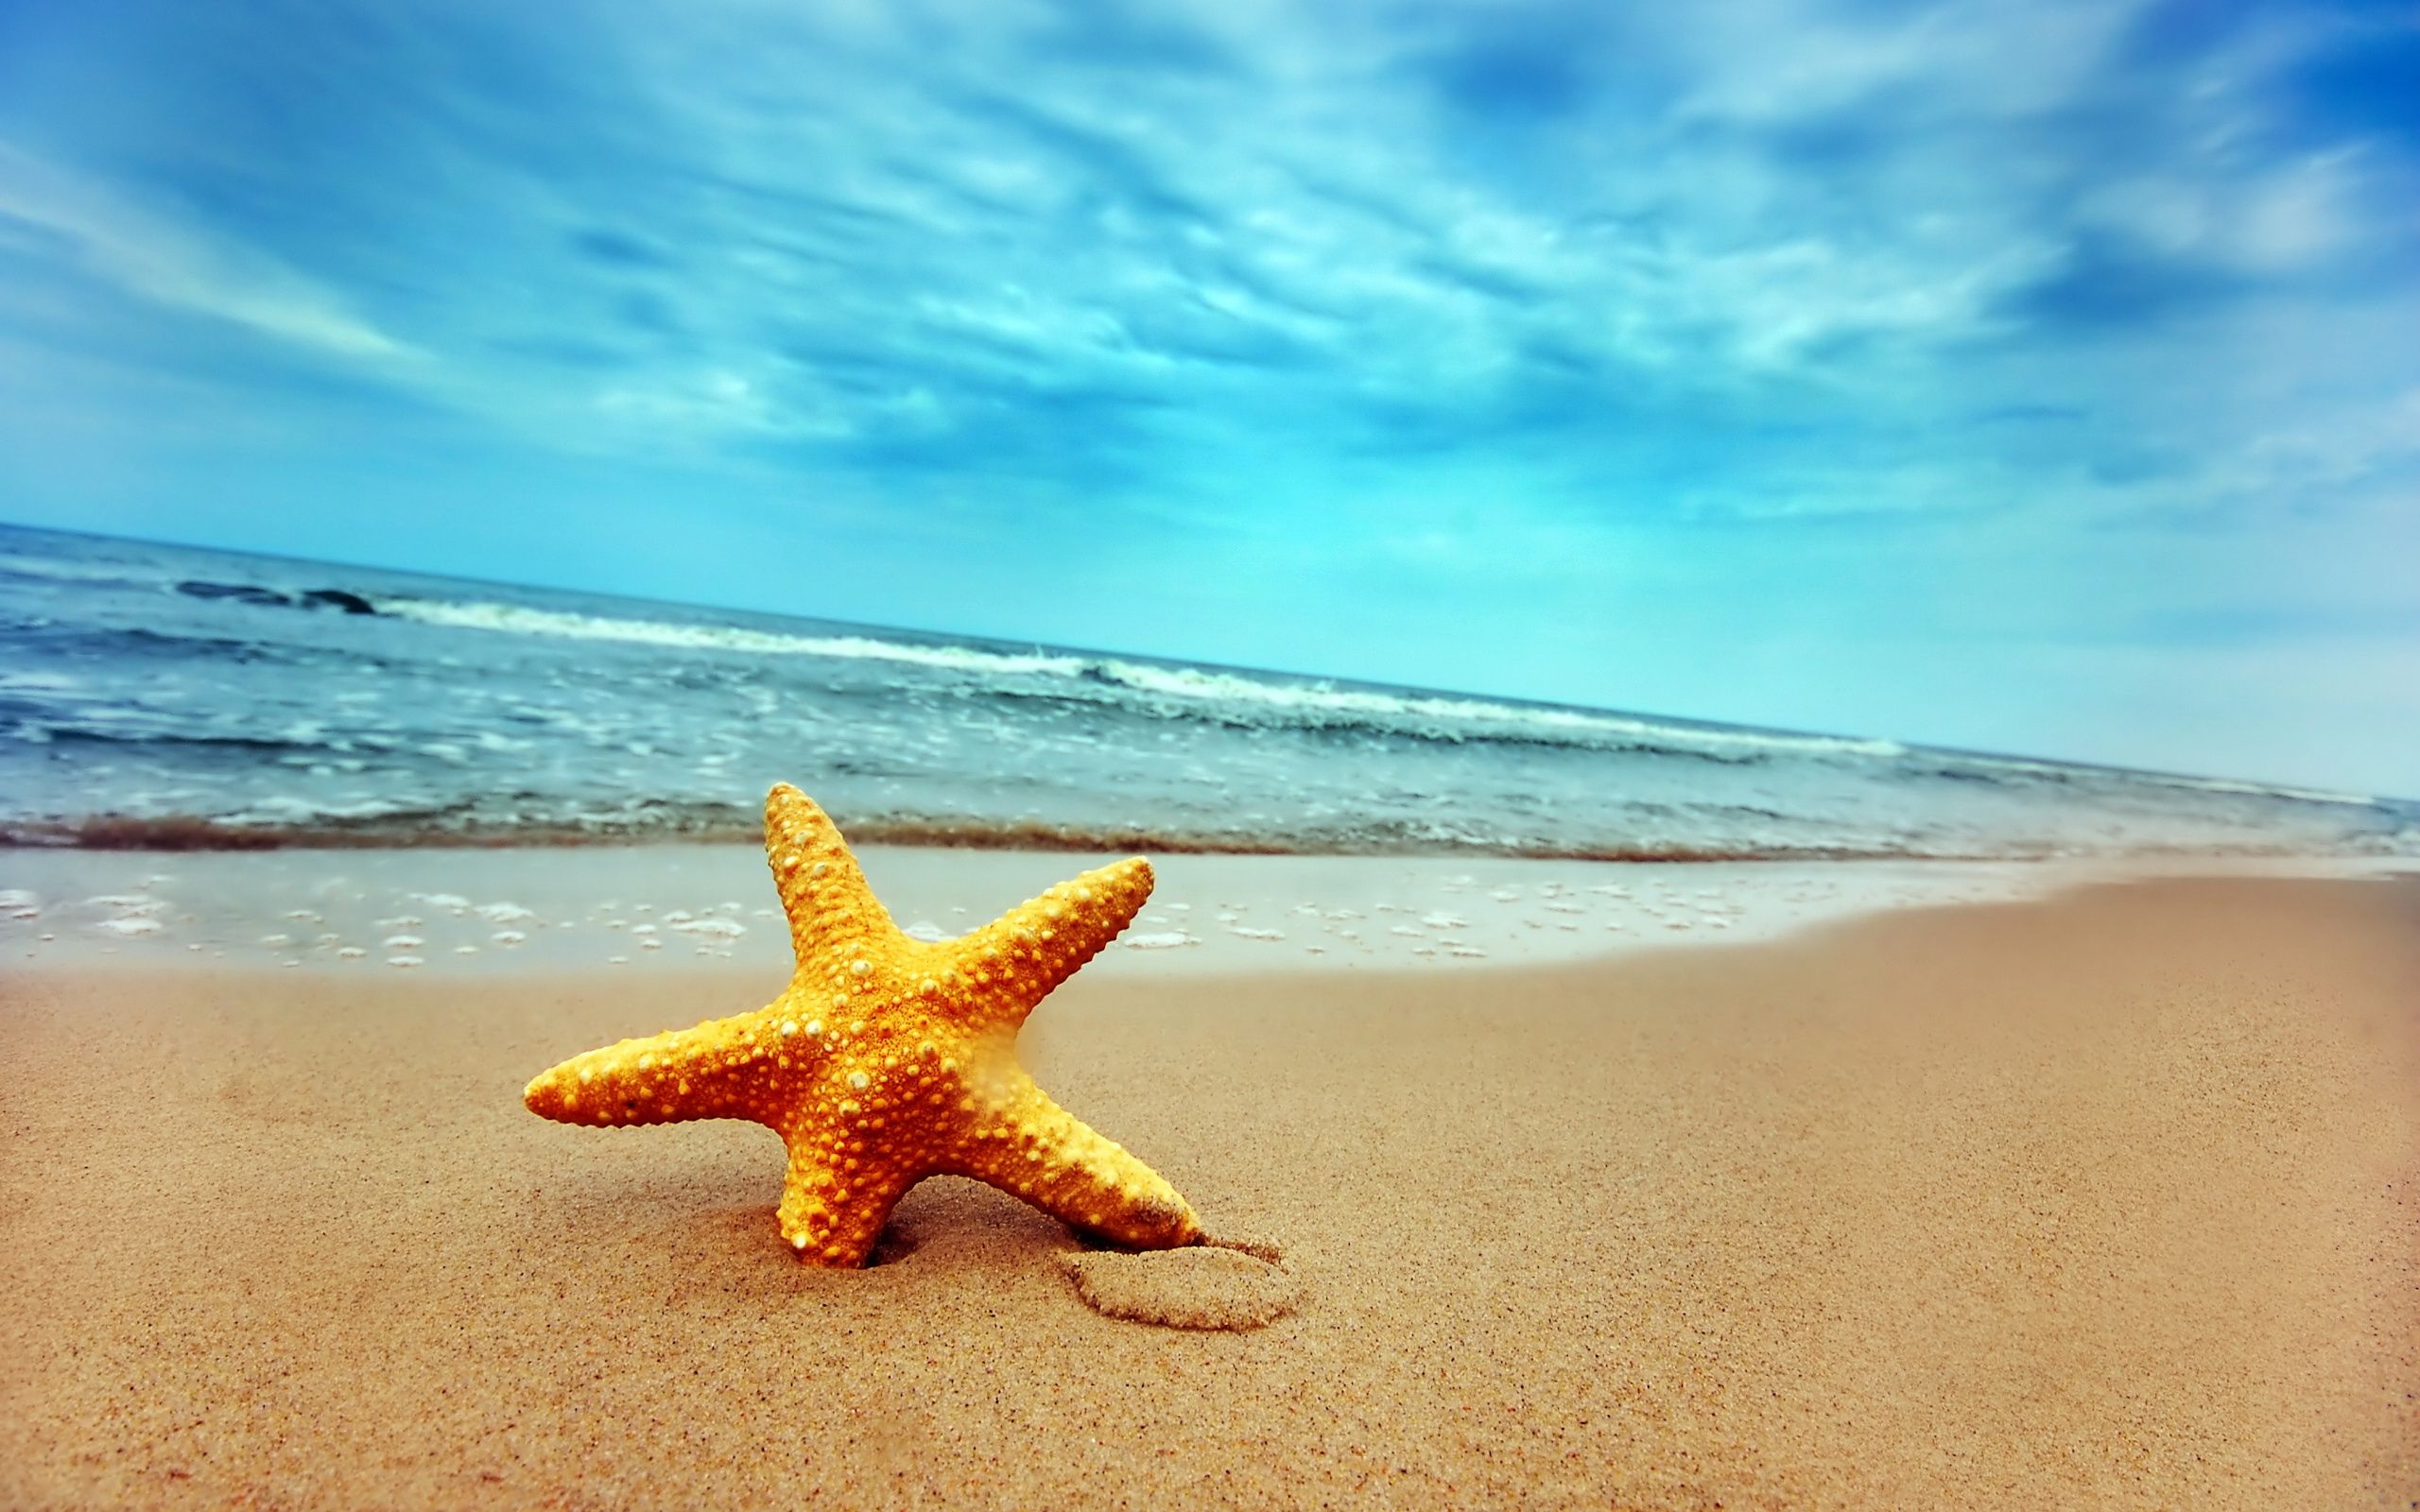 Beach Sand Starfish